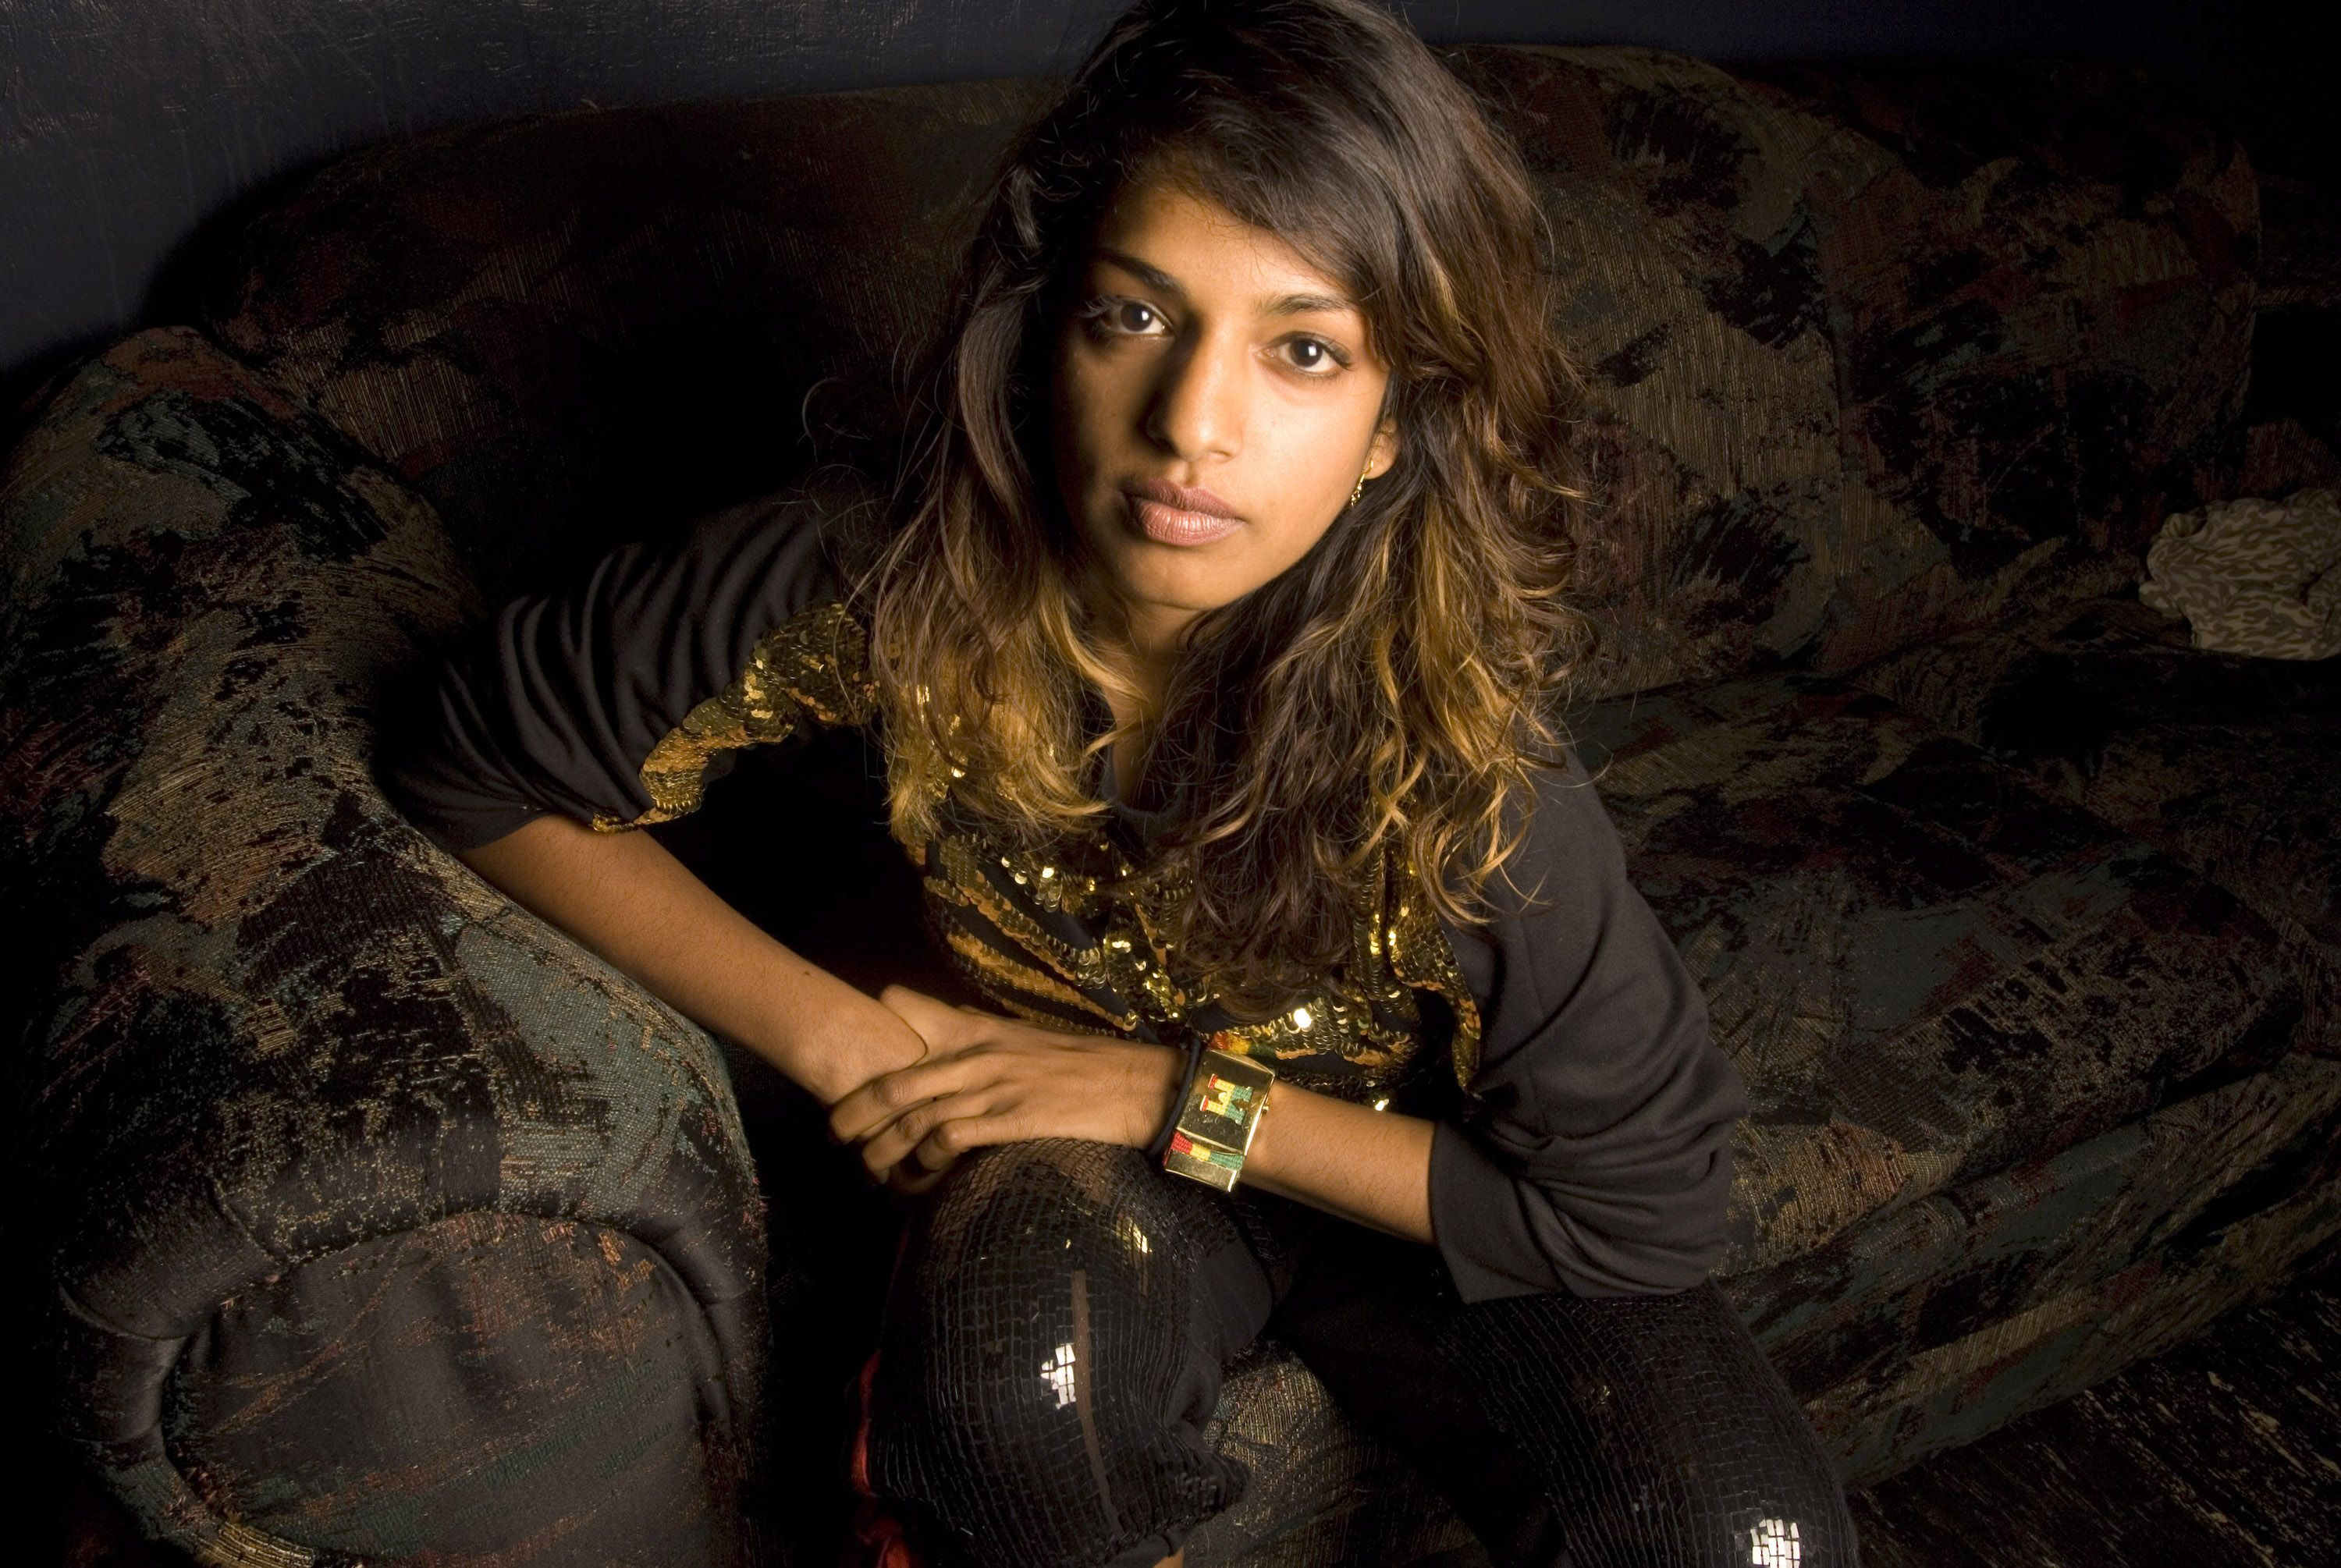 girl-search-terms-extreme-beautiful-teen-knight